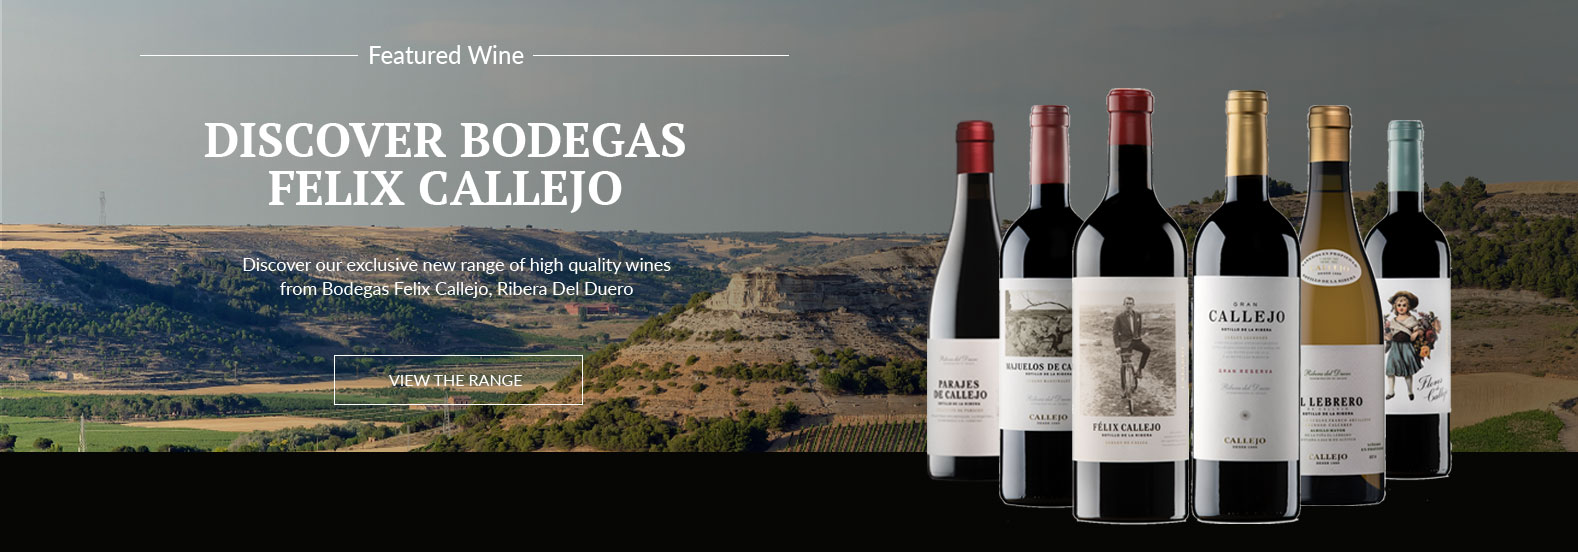 Display of a range ofBodegas Felix Callejo Wines in front of image of their vineyard - valley's and hills with vines.